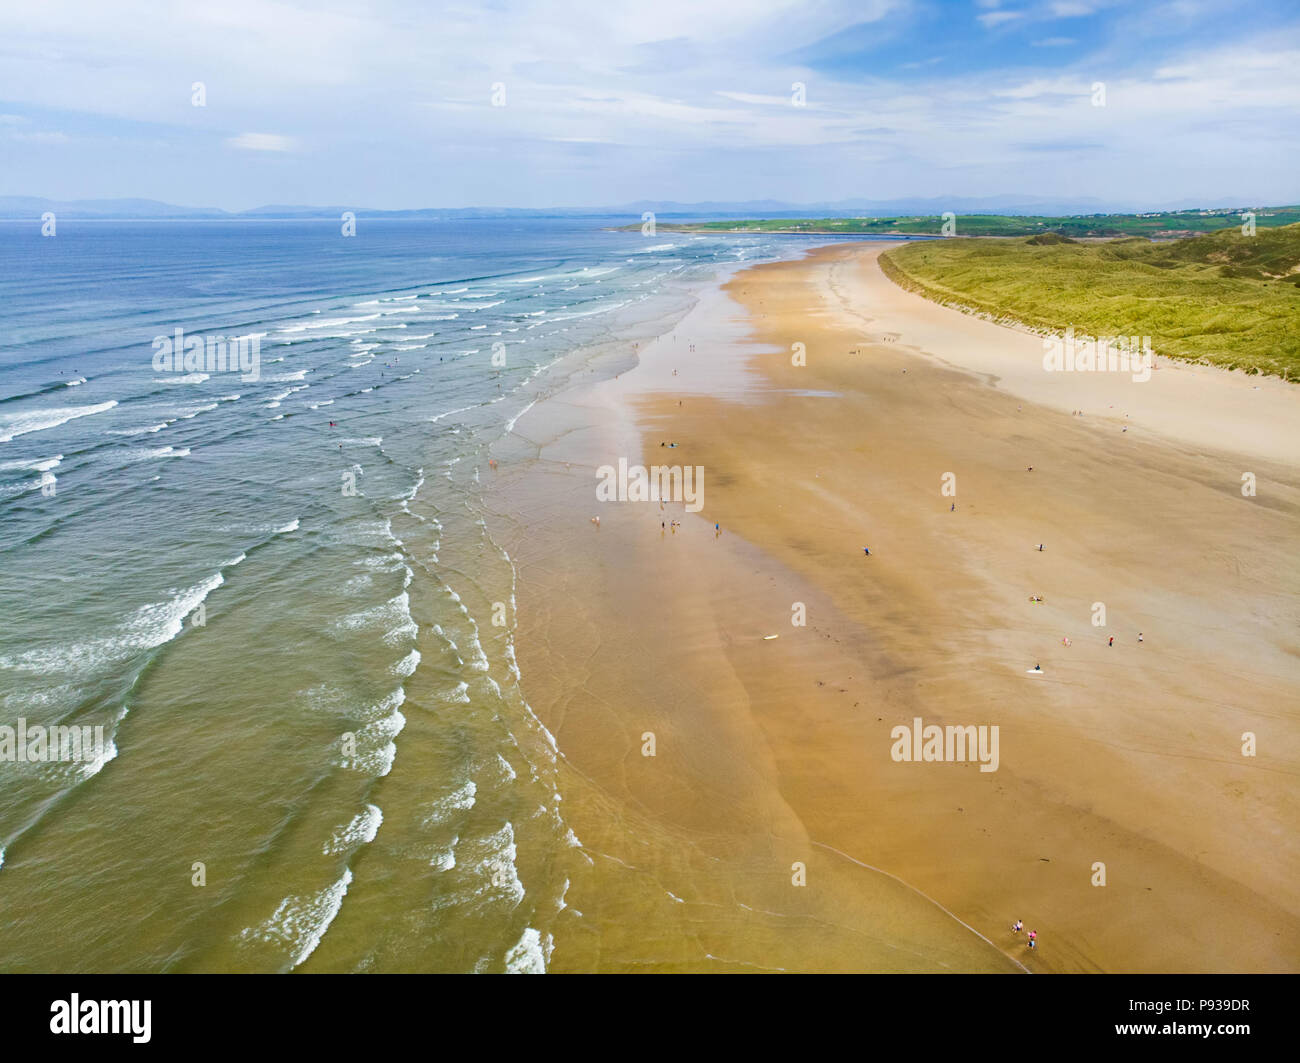 Spectacular Tullan Strand, one of Donegal's renowned surf beaches, framed by a scenic back drop provided by the Sligo-Leitrim Mountains. Wide flat san - Stock Image